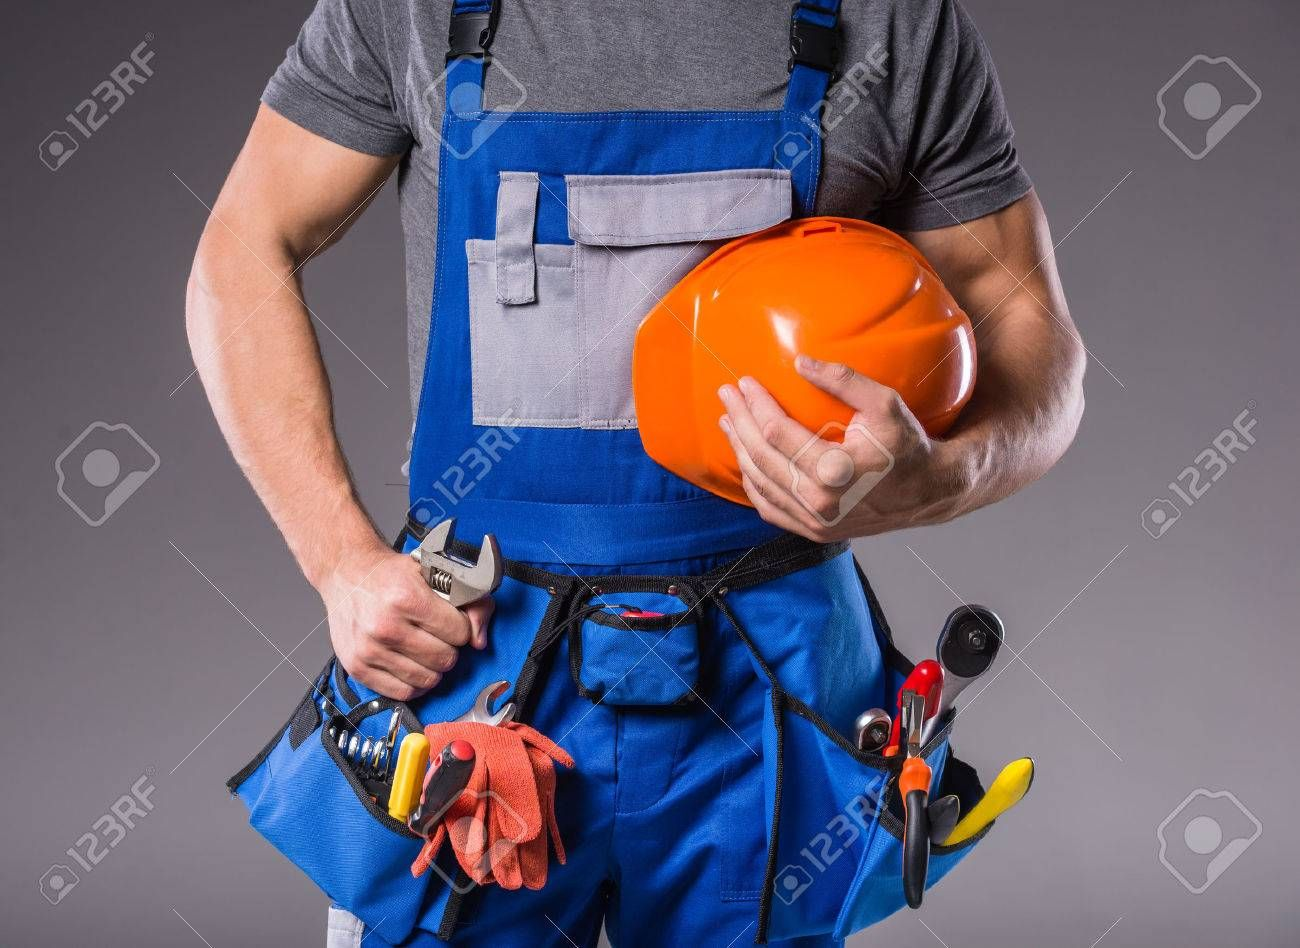 Construction Work Portrait Of A Young Builder With Tools In Hand